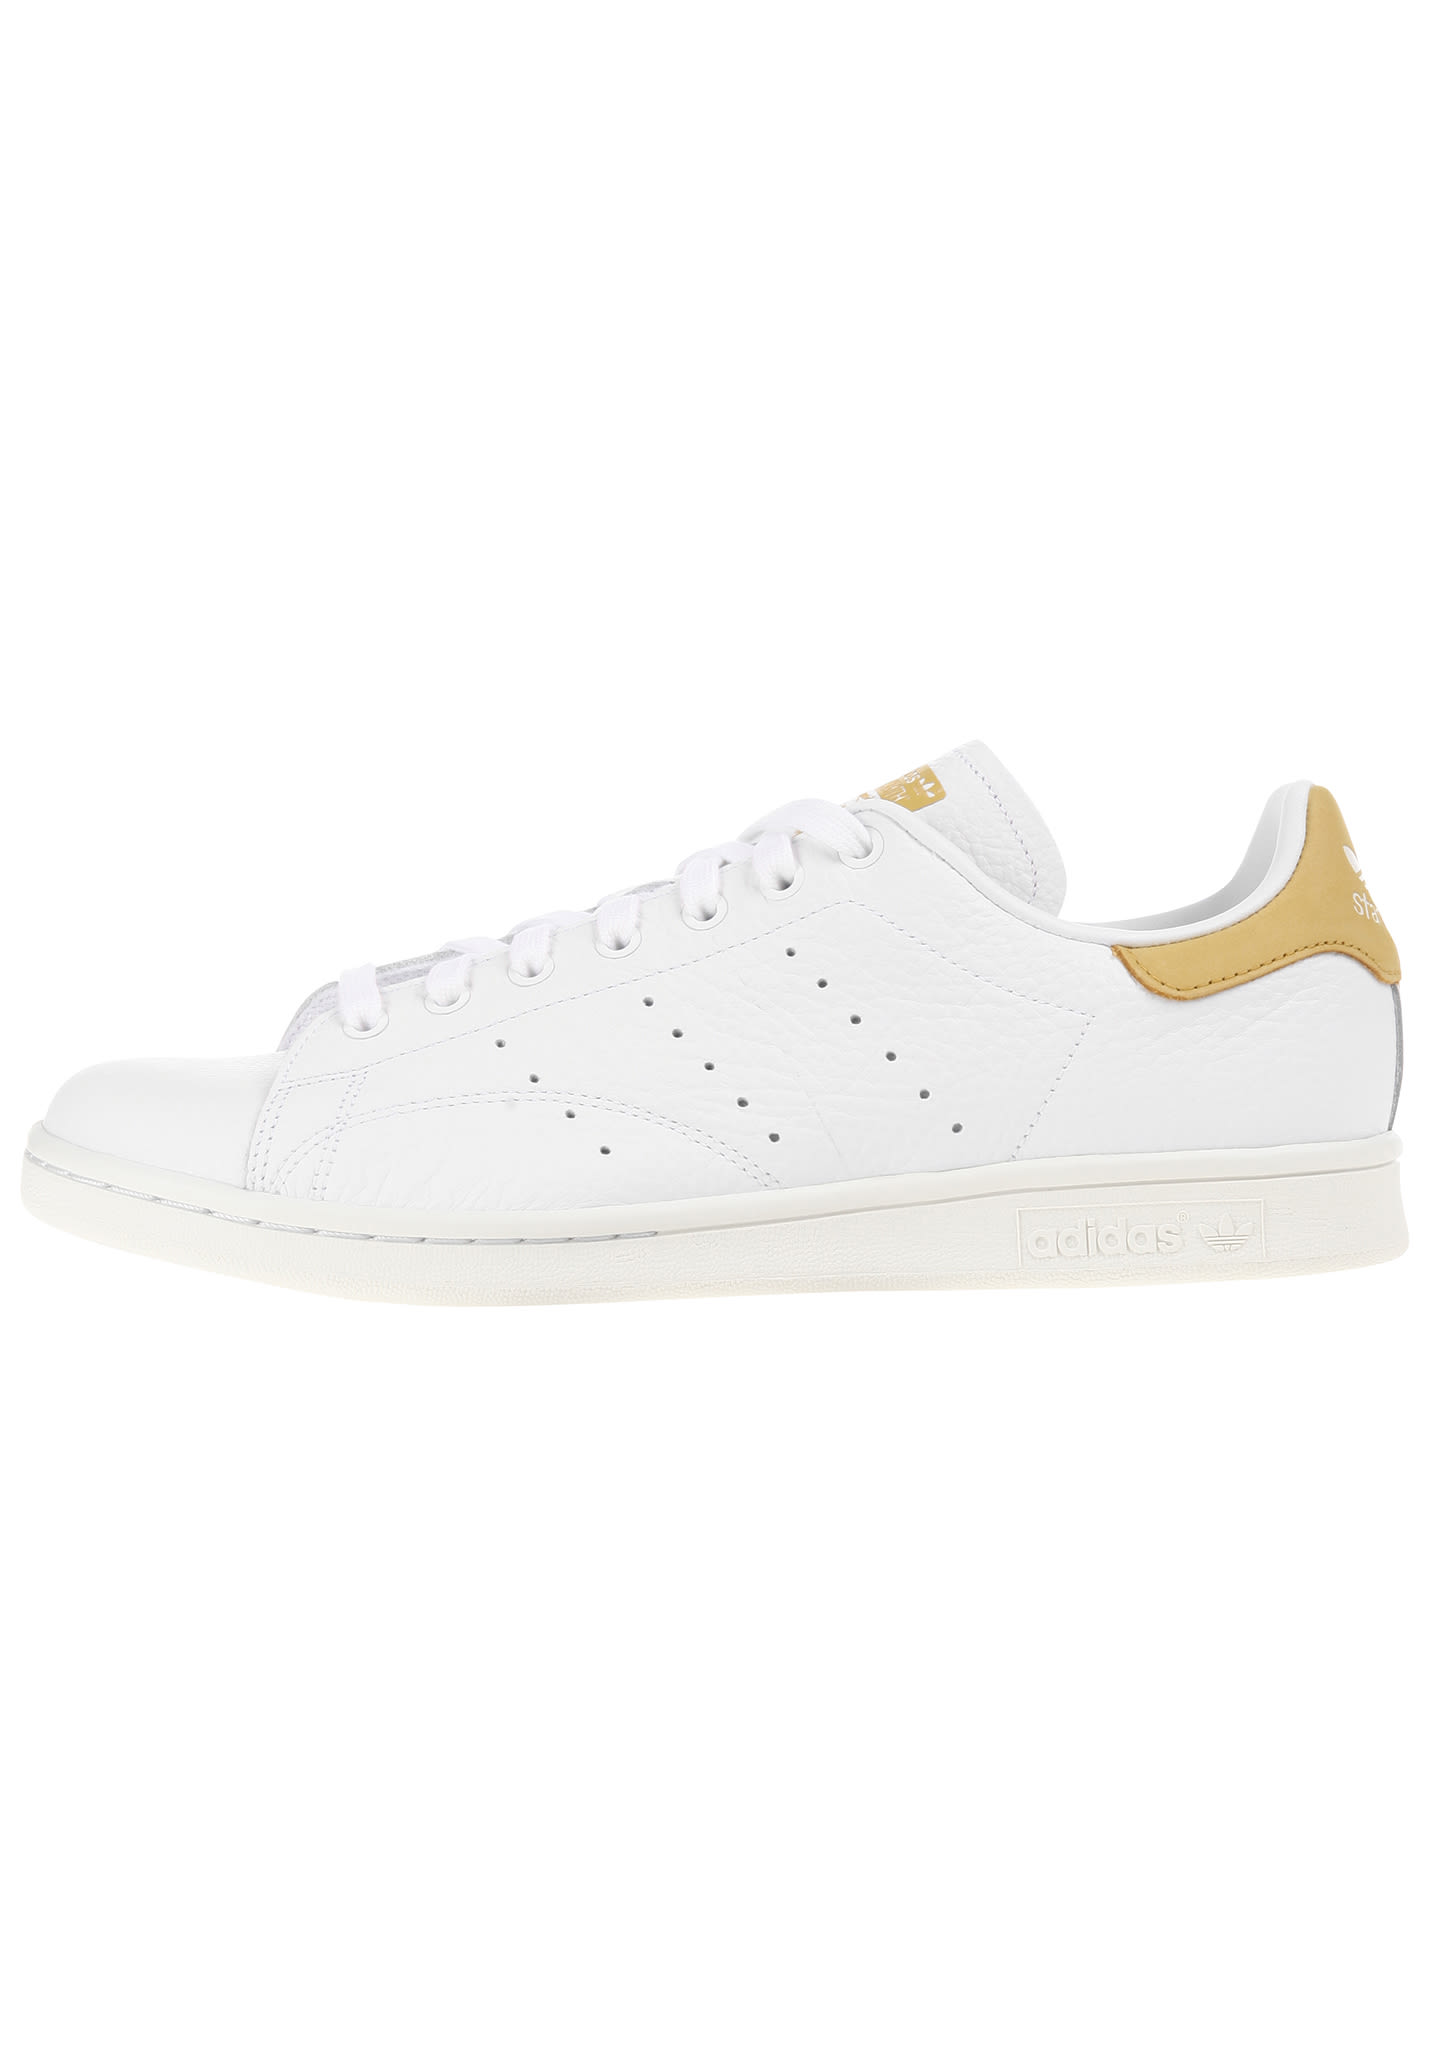 ADIDAS ORIGINALS Stan Smith - Sneakers for Men - White - Planet Sports e6af0b707